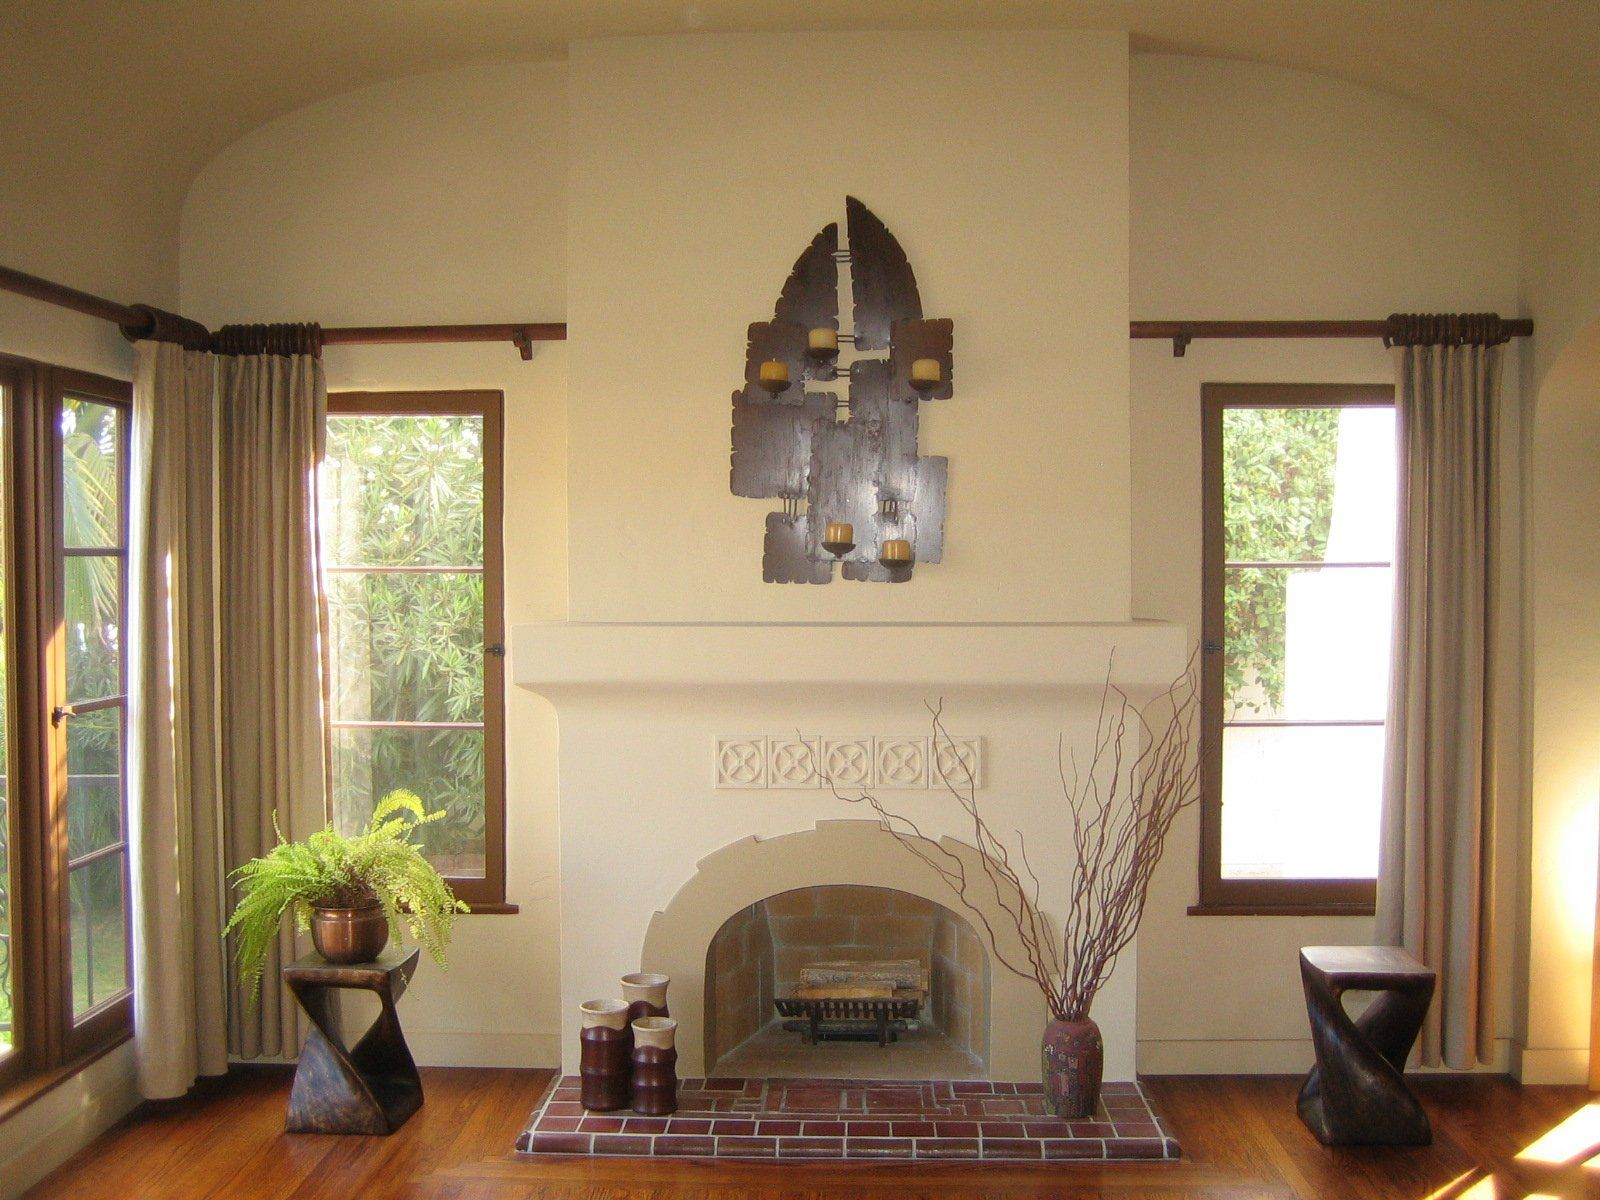 Fireplace Plaster Design Yahoo Search Results Liked Staging San